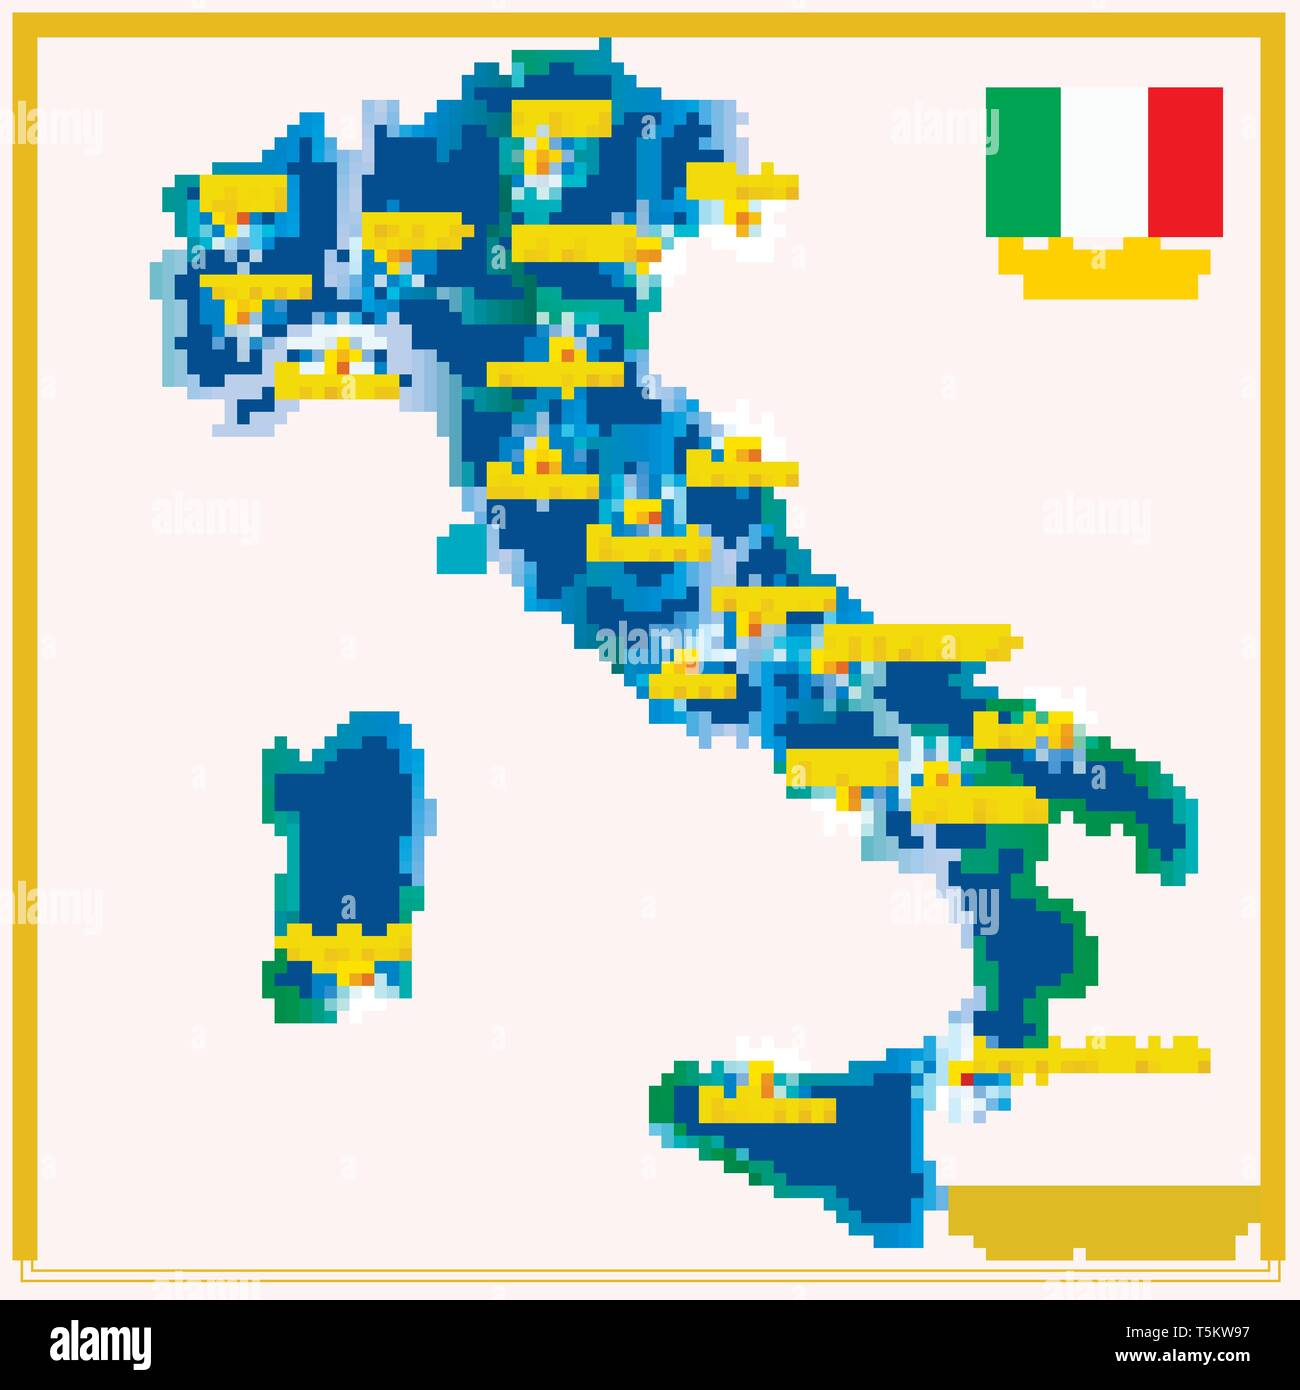 Map Of Italy In Italian.Map Of Italy With Infographic Illustration With Italian Infographic